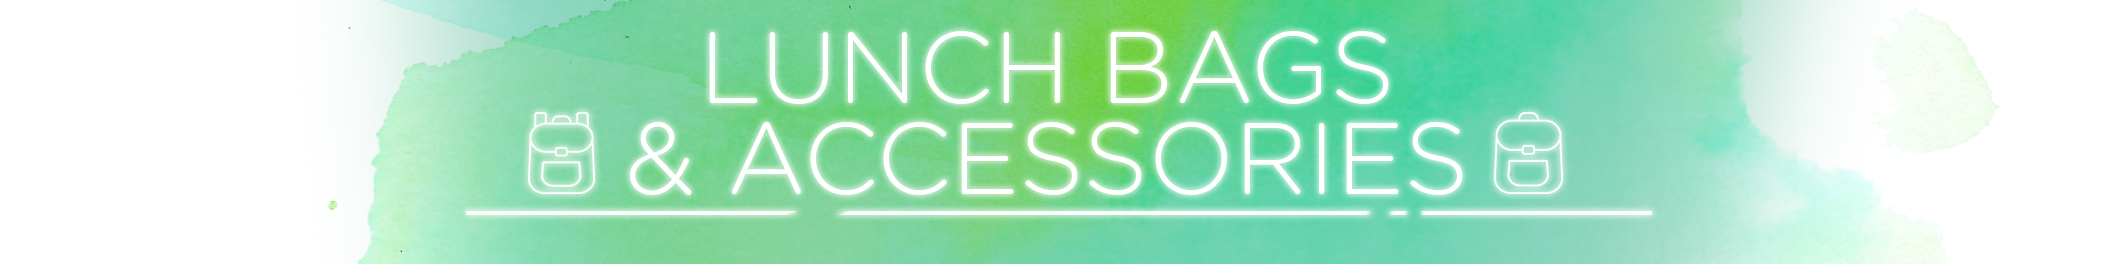 Lunch bags and accessories category banner 2112x264